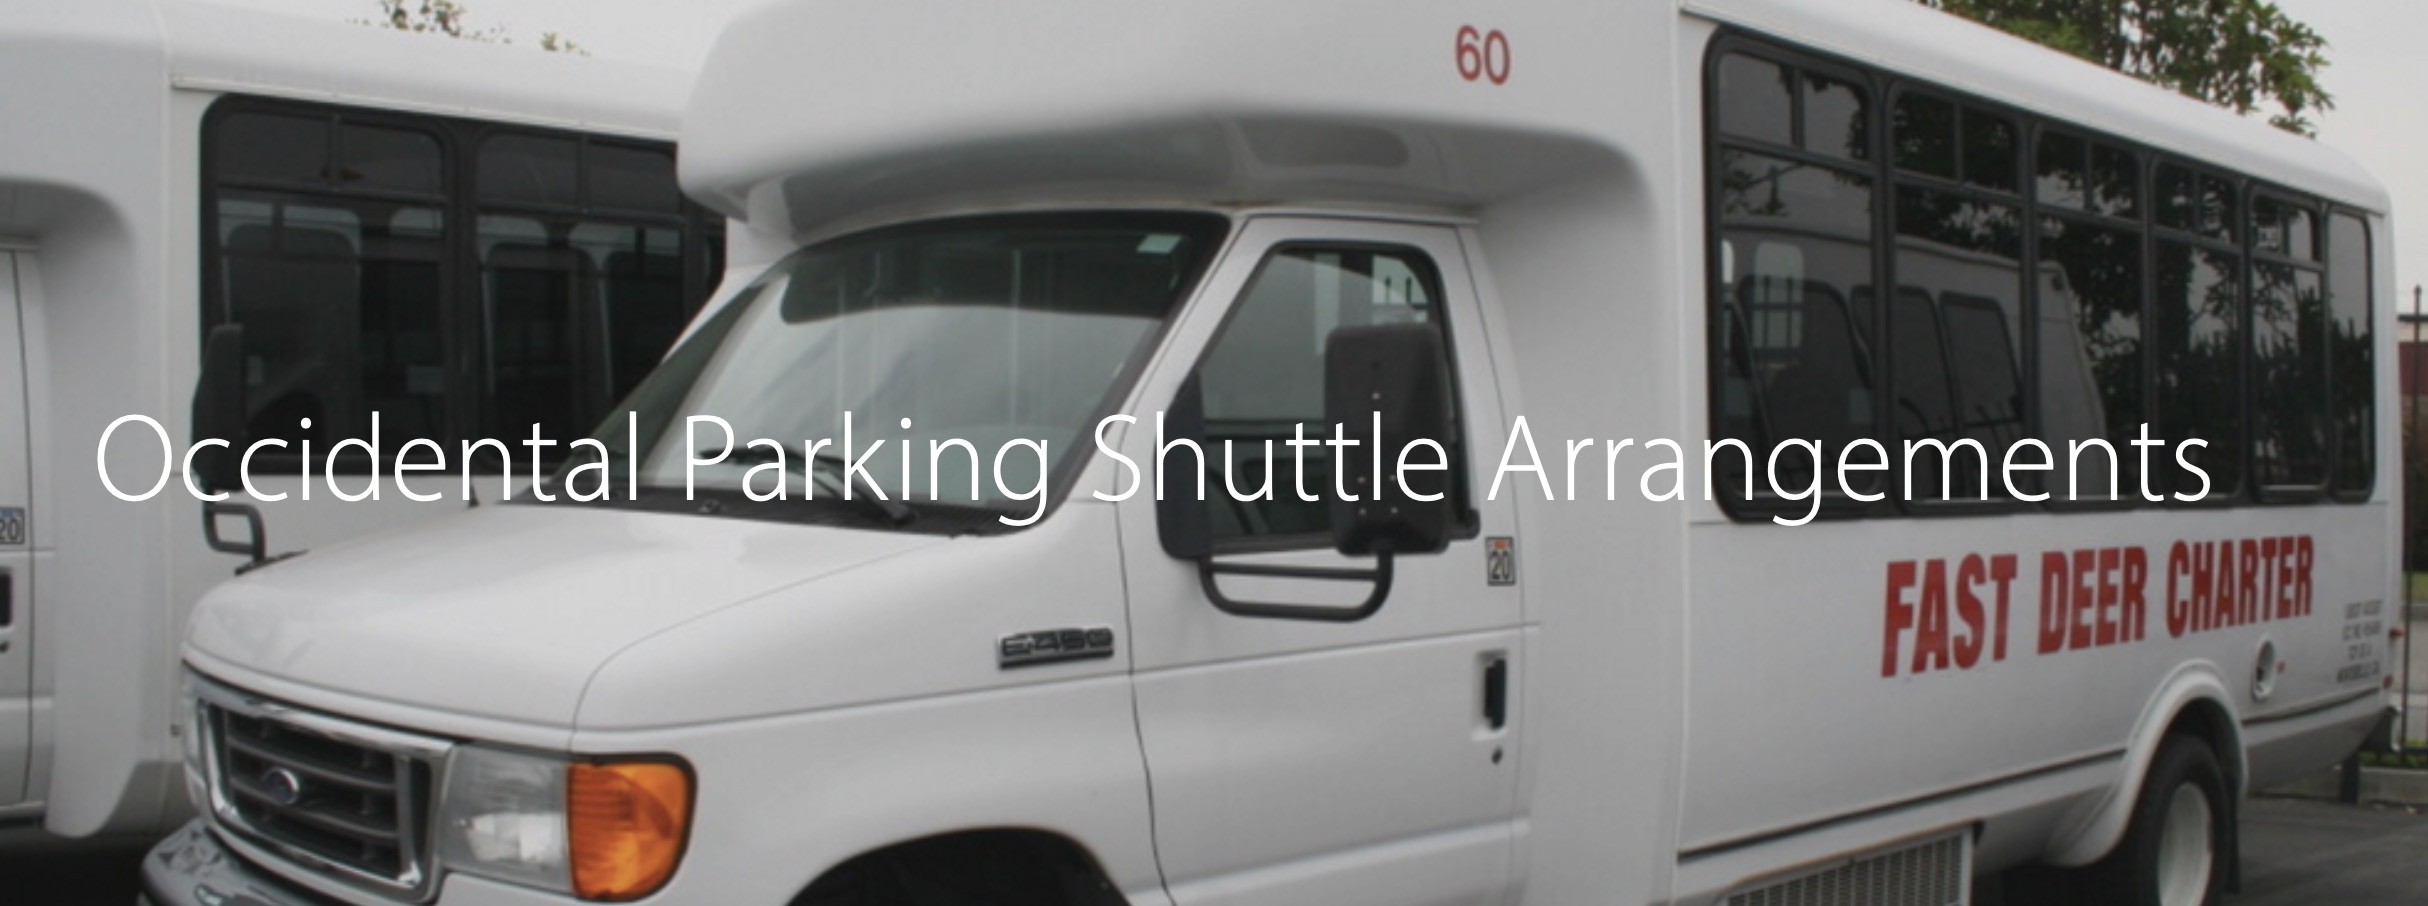 Click here for shuttle schedule